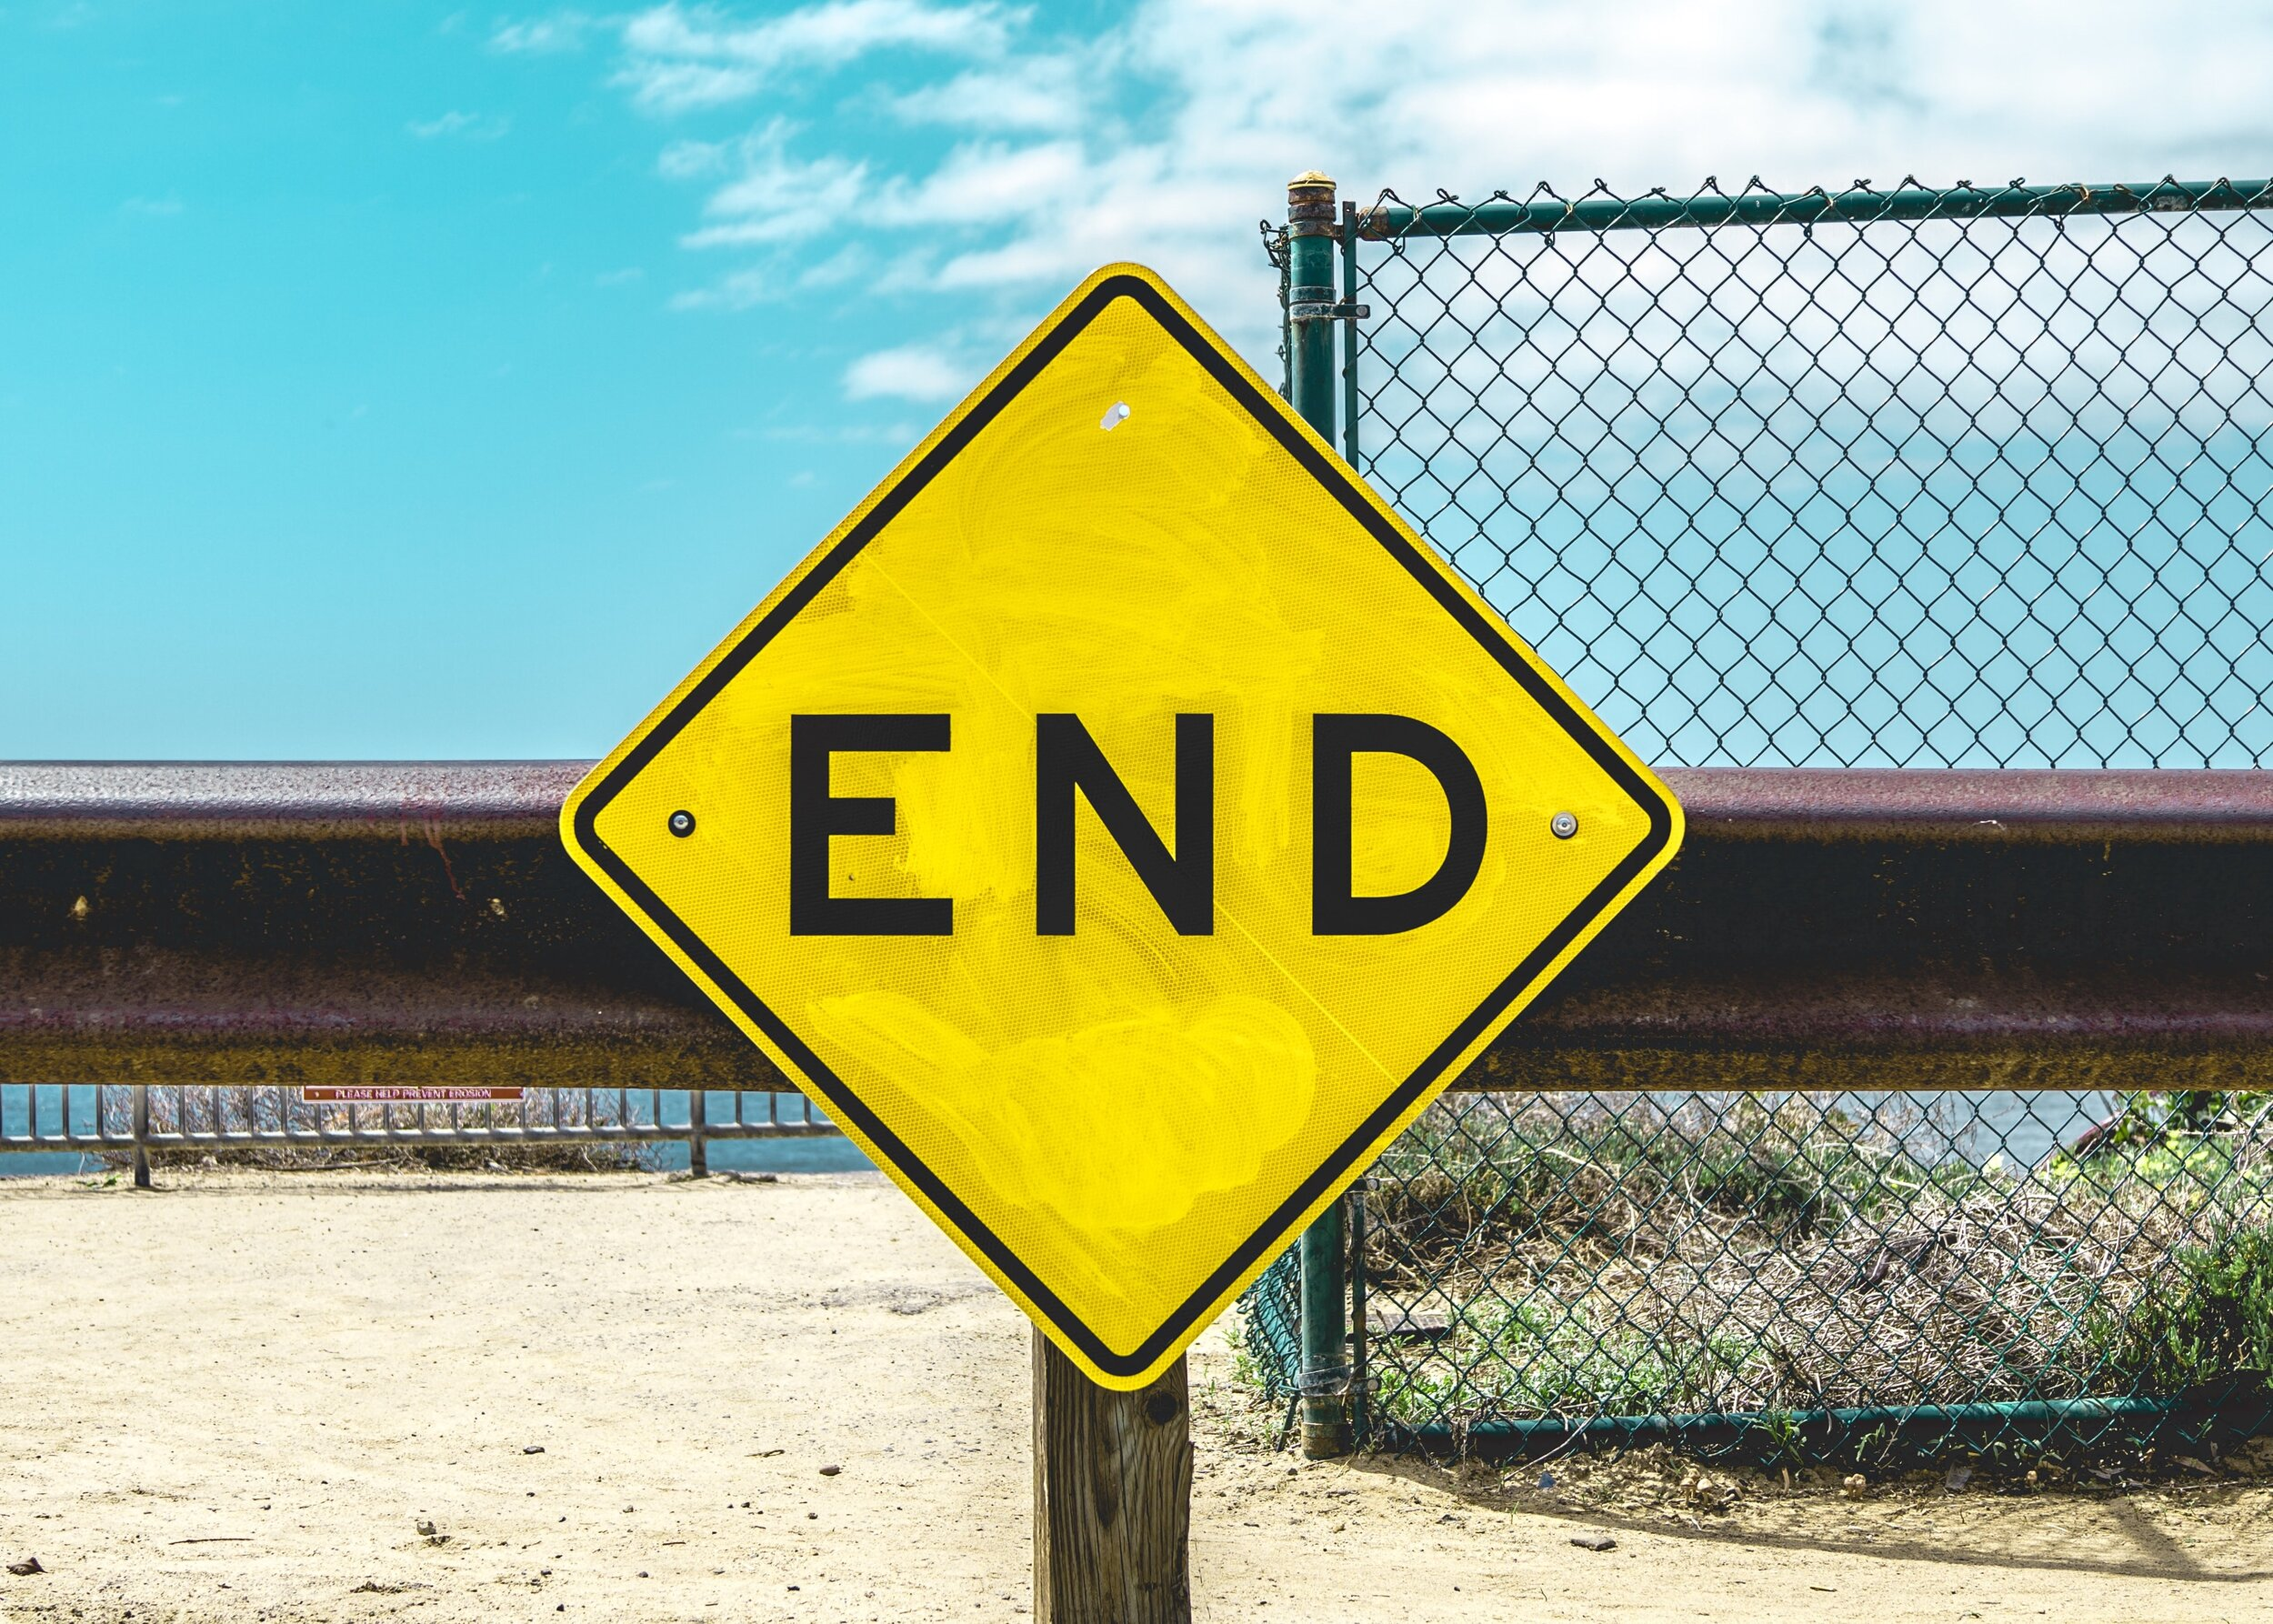 MLOps: The end of end-to-end